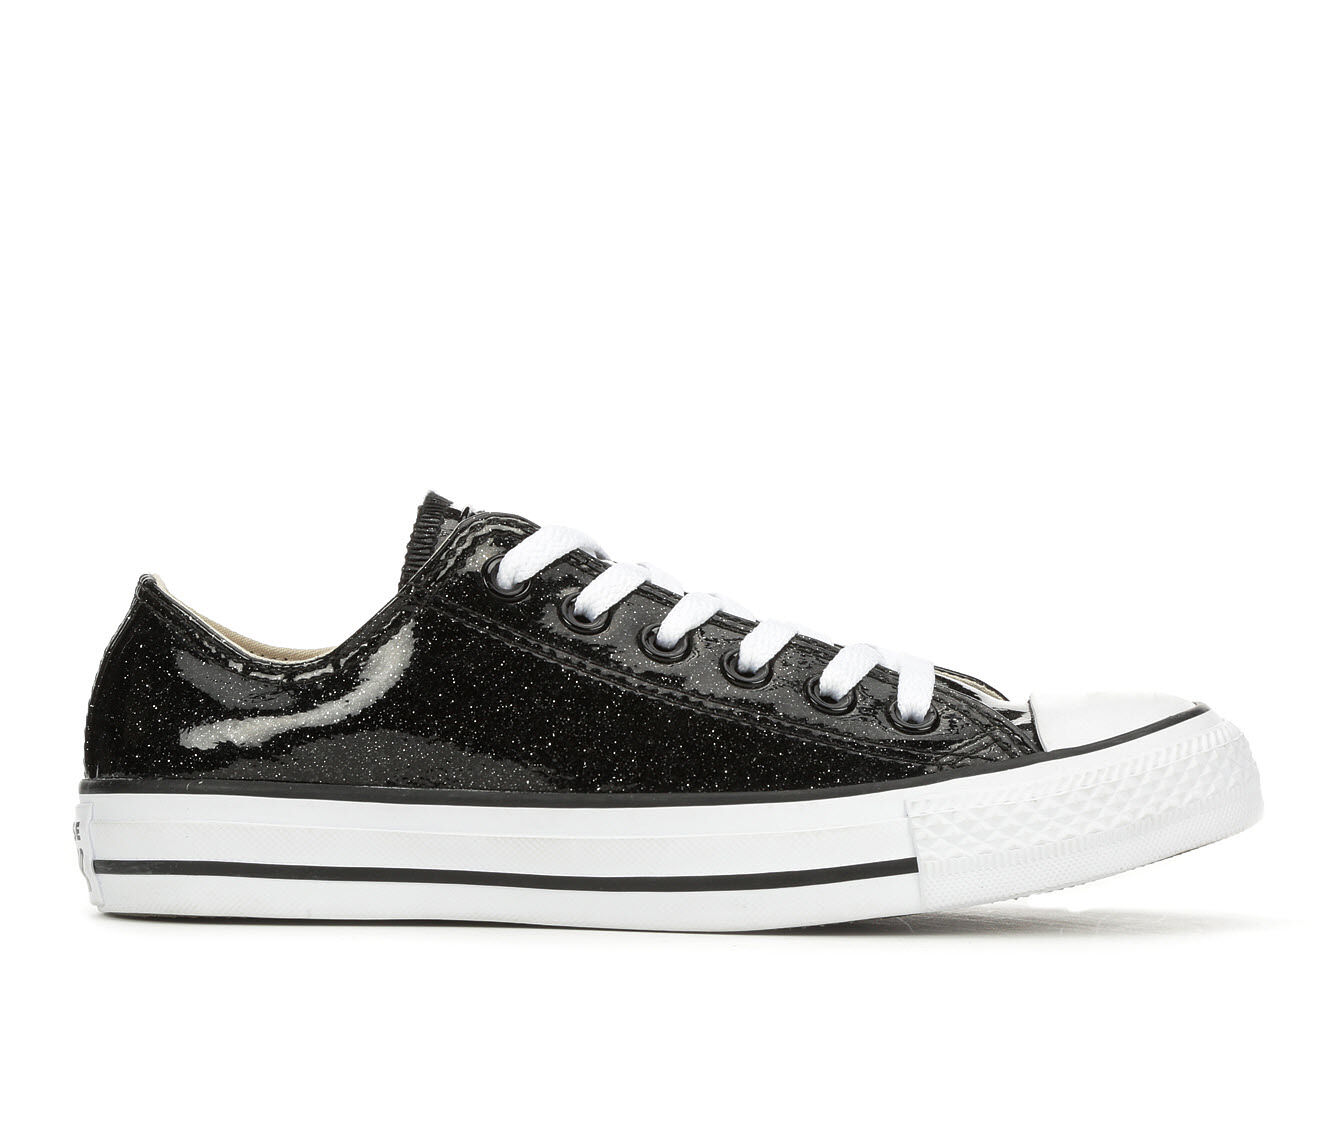 Women's Converse After Party Ox Sneakers Black/White